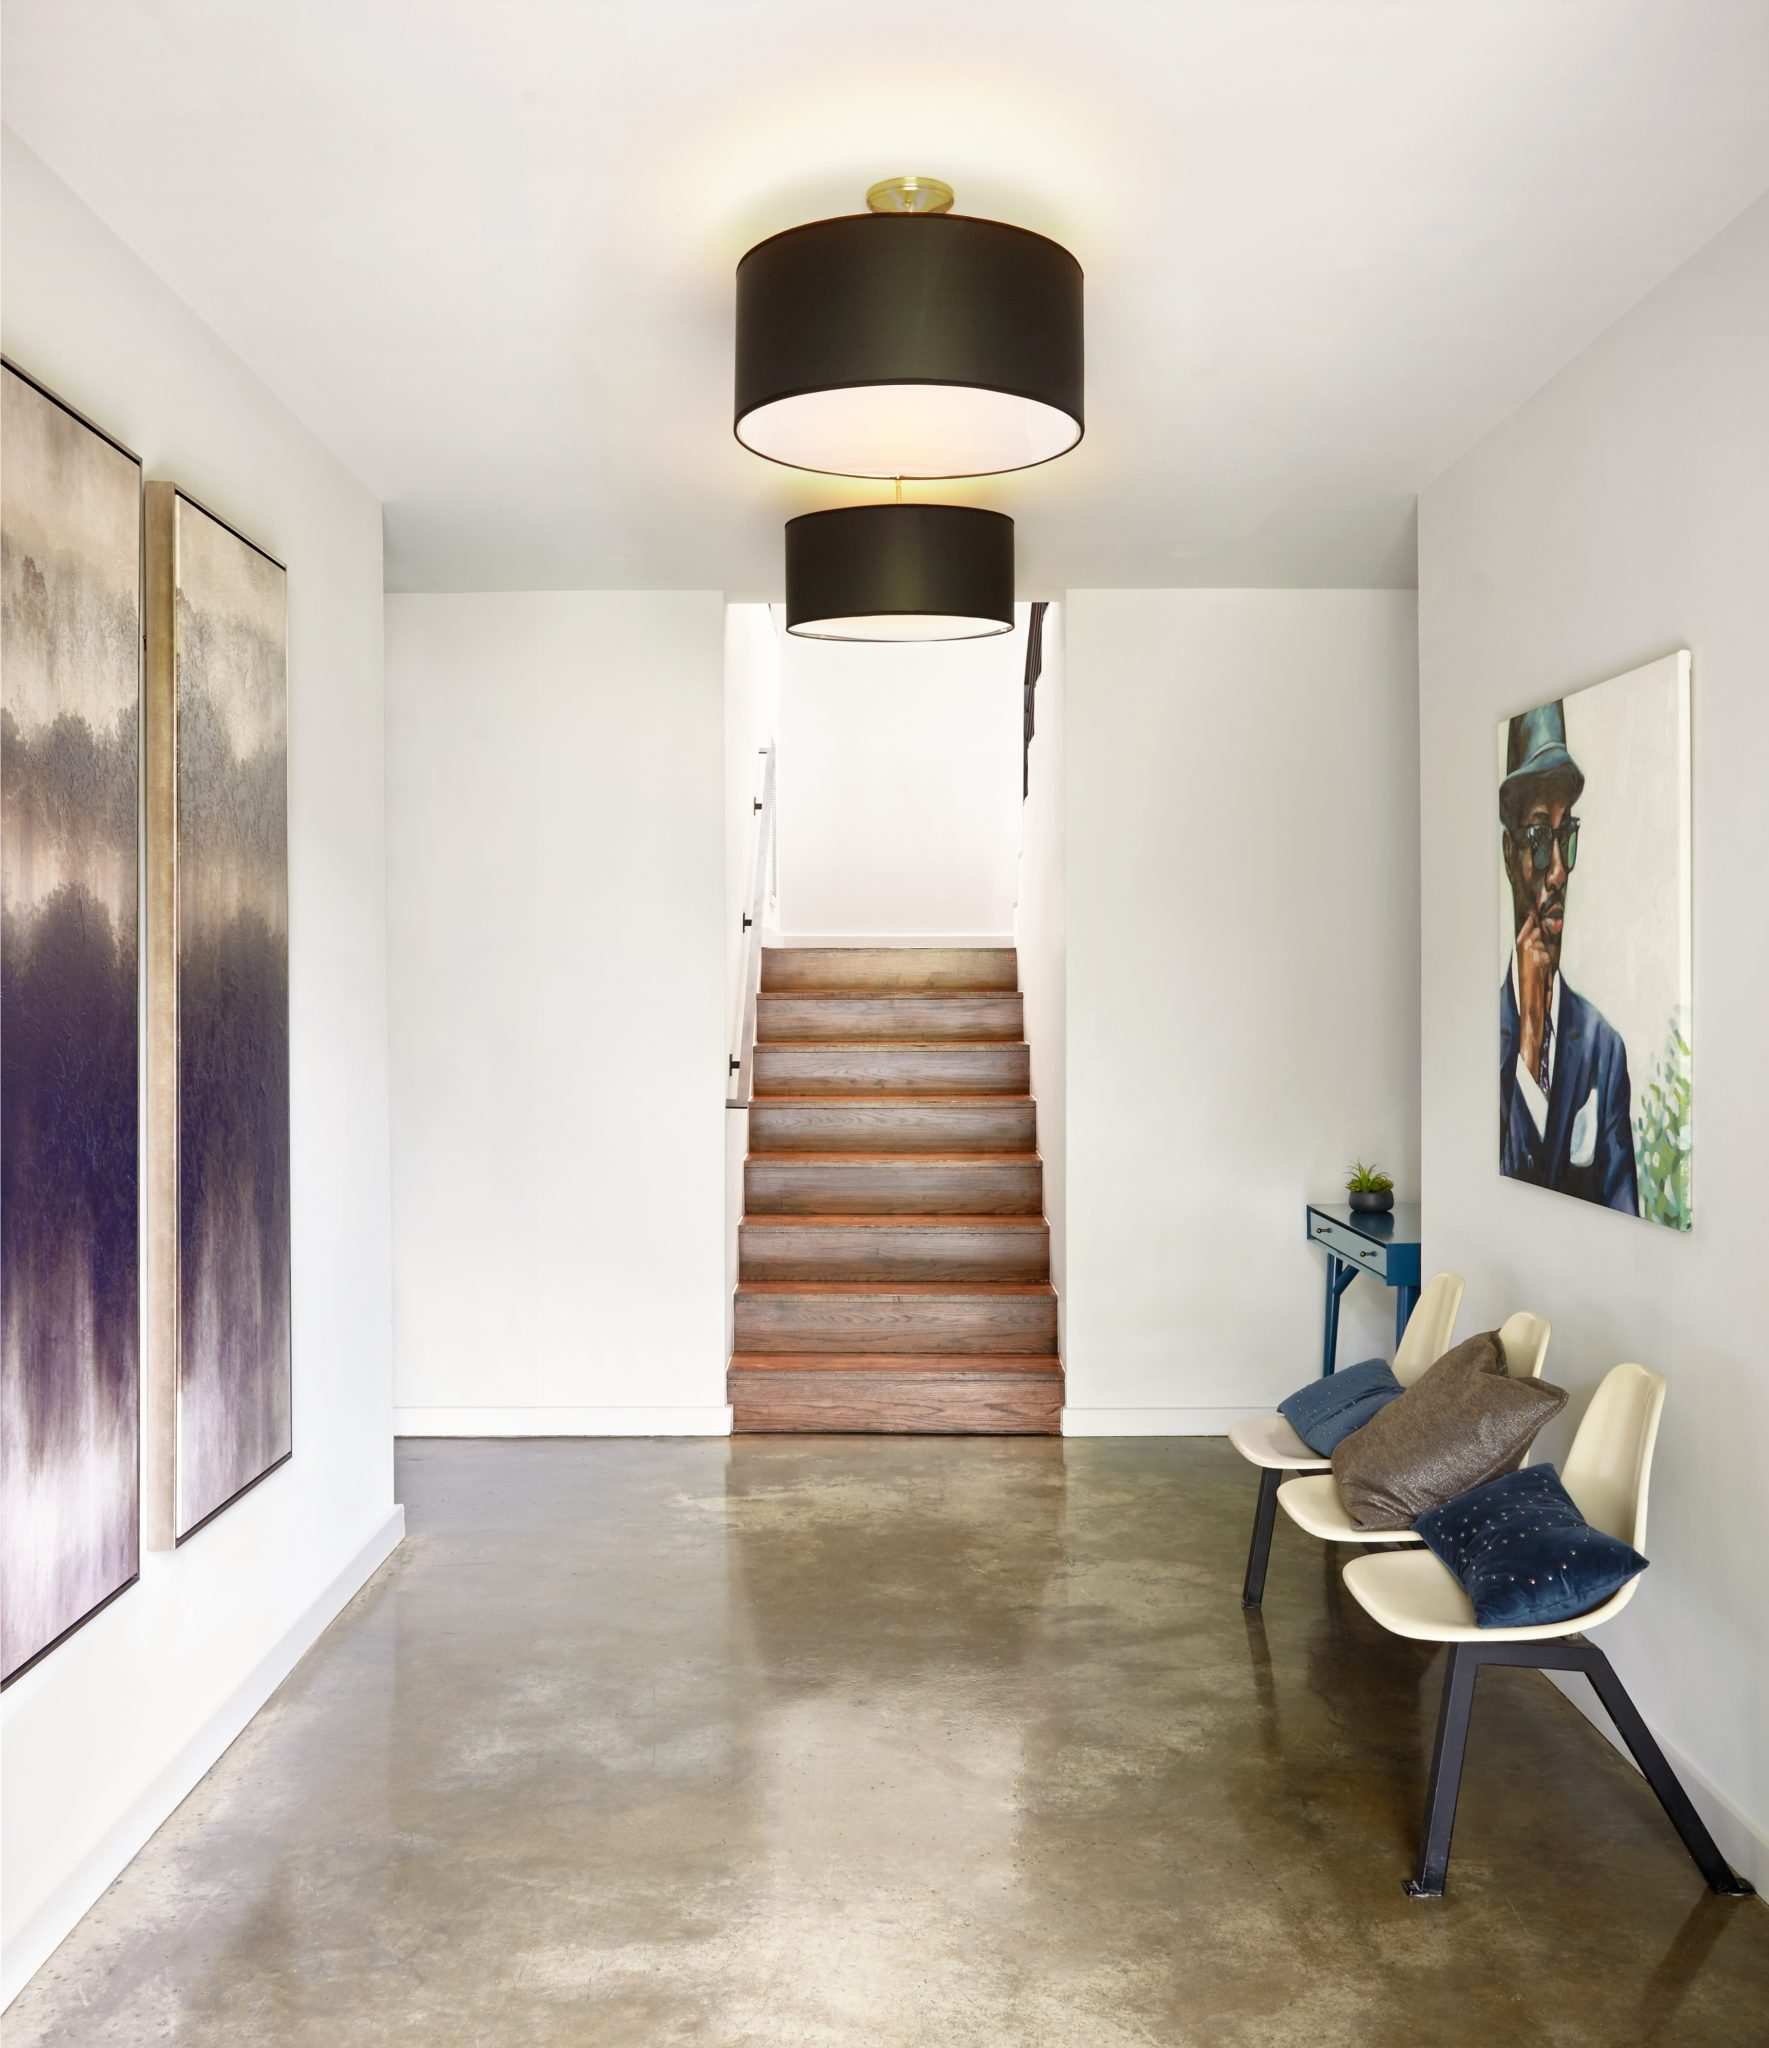 Stained concrete floors with mid-century modern bench seating. By Marcelle Guilbeau Interior Design